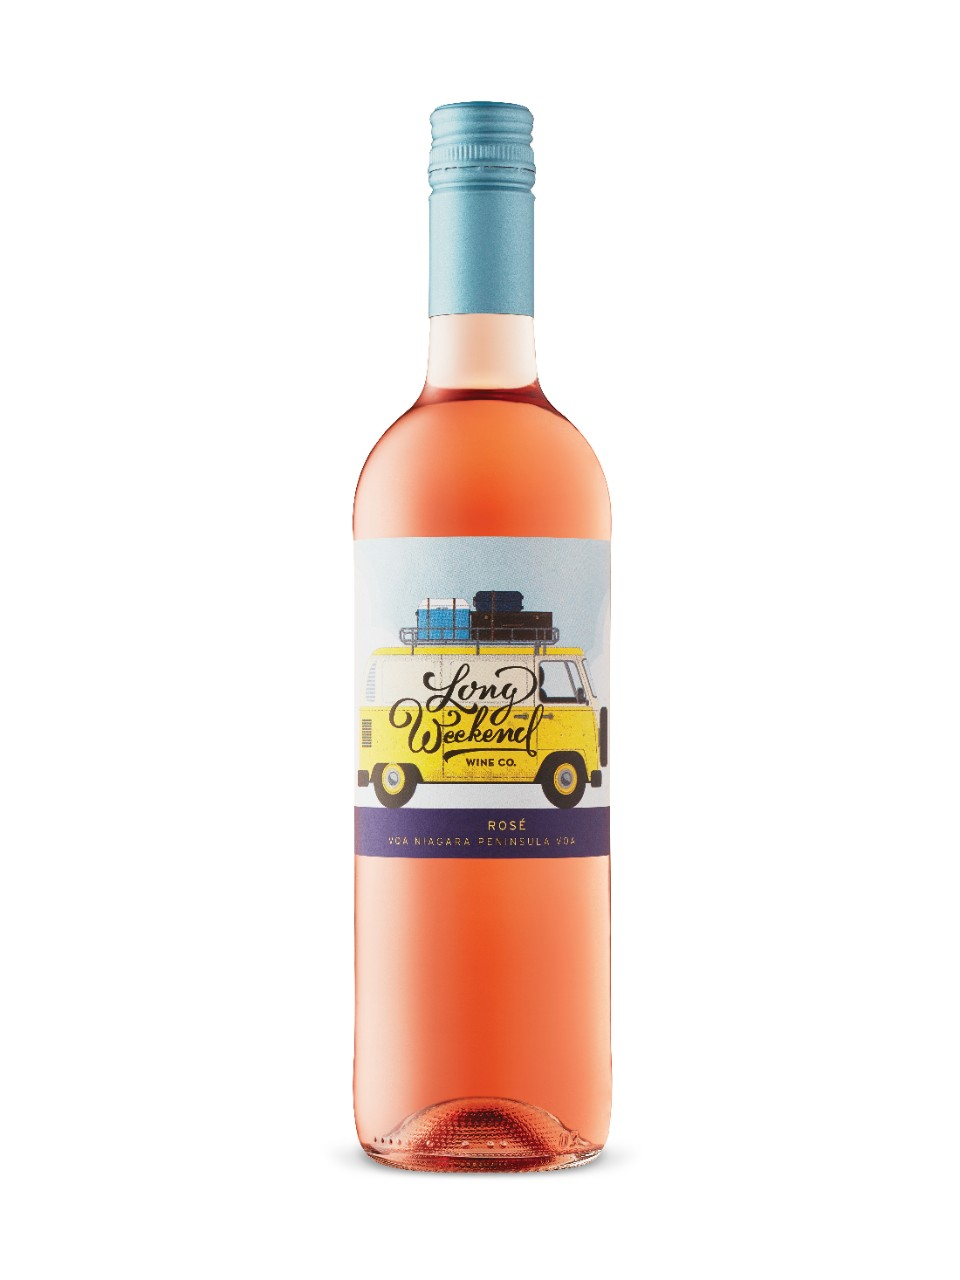 Image for Long Weekend Wine Co. Rosé from LCBO